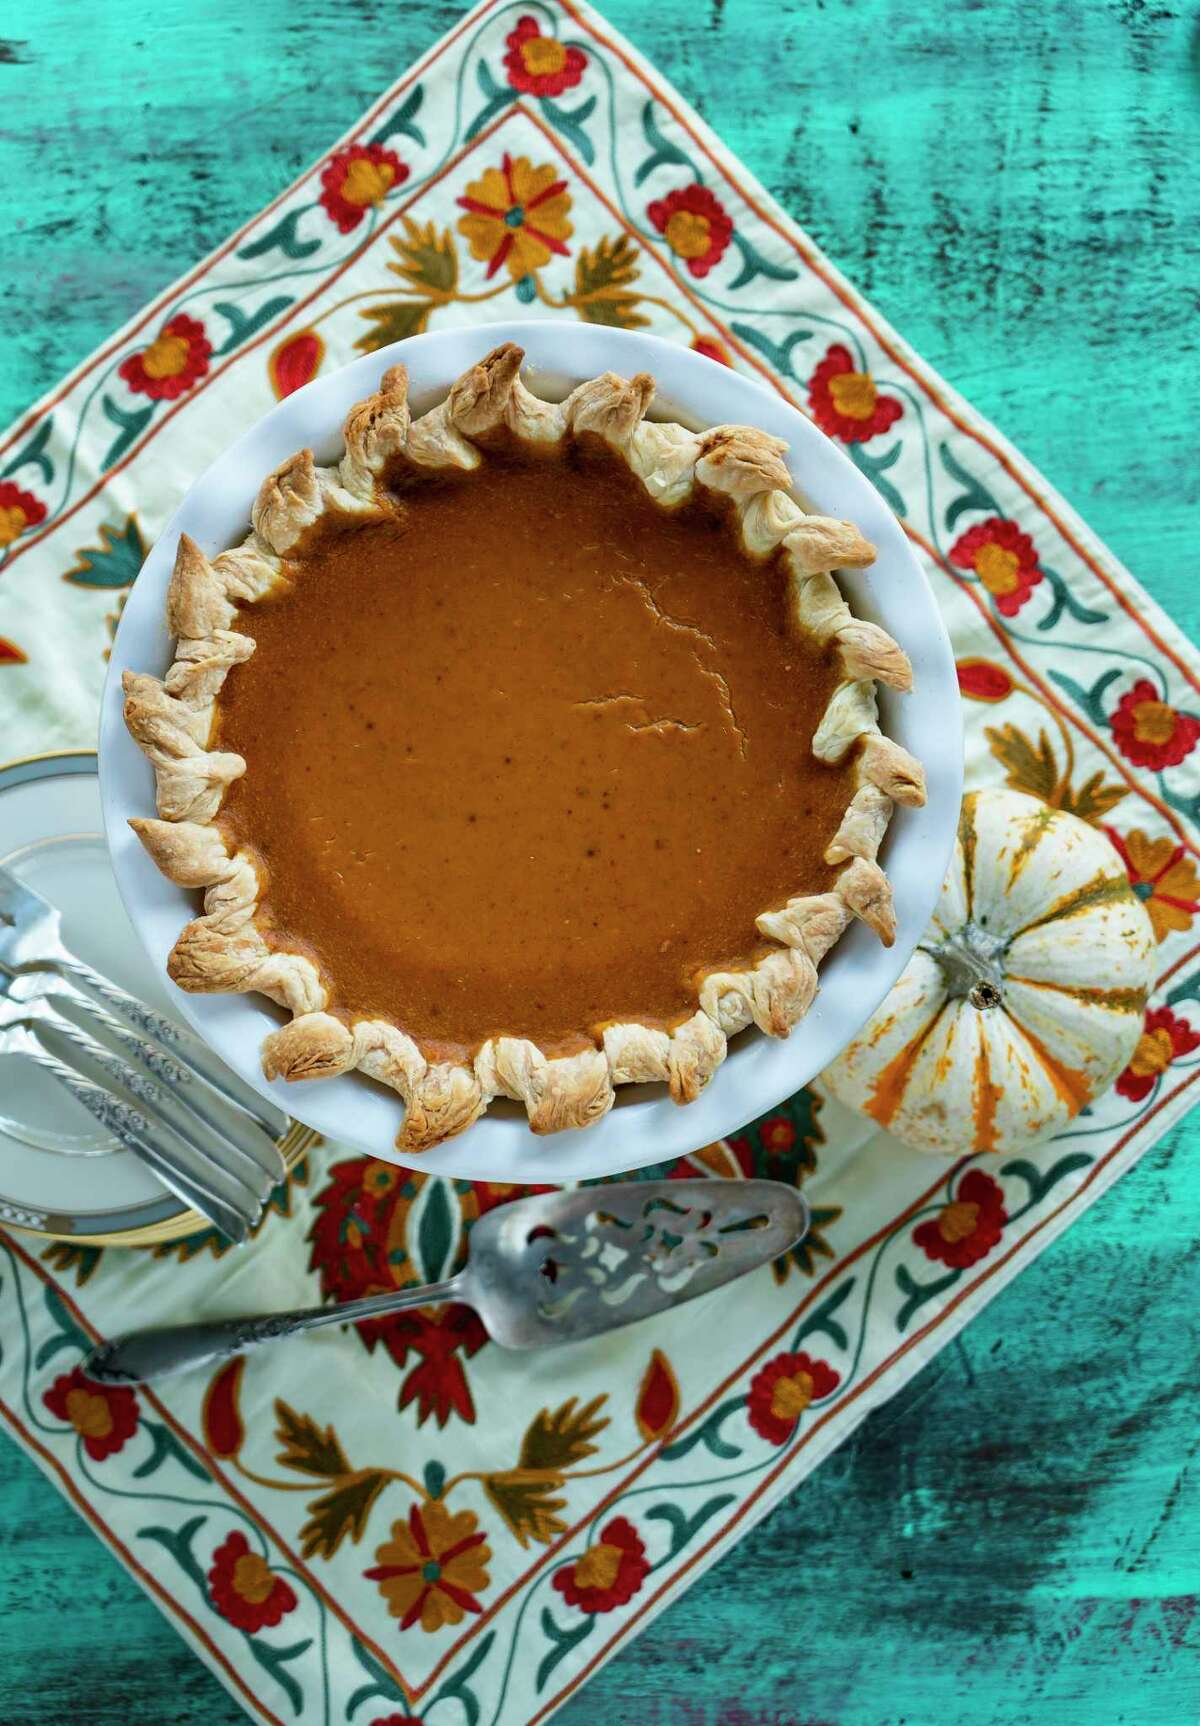 All-Butter Pie Crust and Pumpkin Pie Filling from pastry chef Victoria Dearmond, Underbelly Hospitality.(Styling by Carla Buerkle)